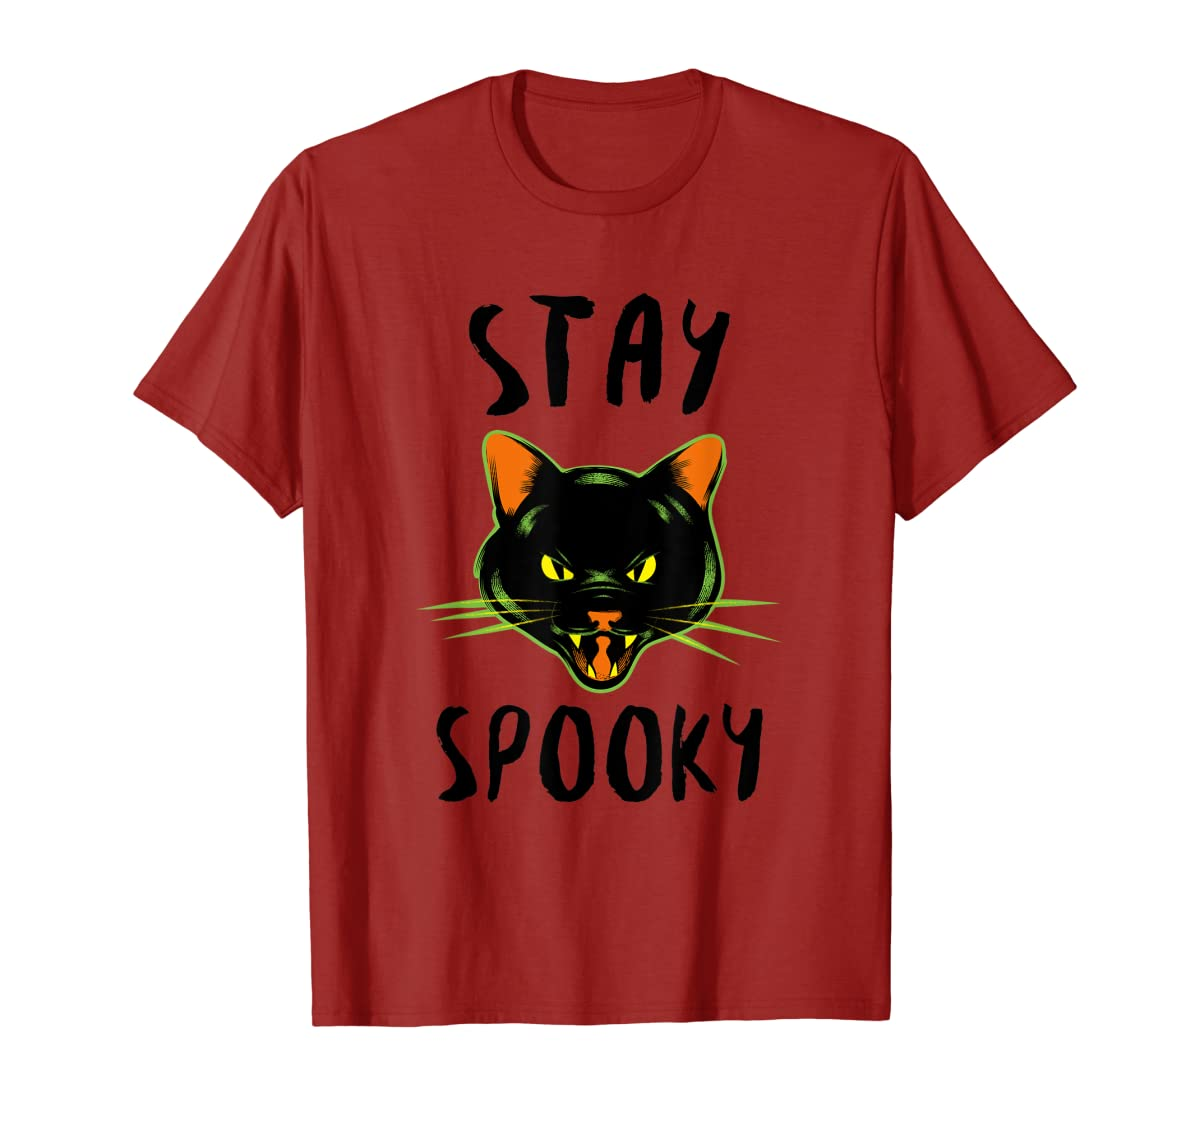 Stay Spooky | Scary Halloween Black Cat T-Shirt-Men's T-Shirt-Red